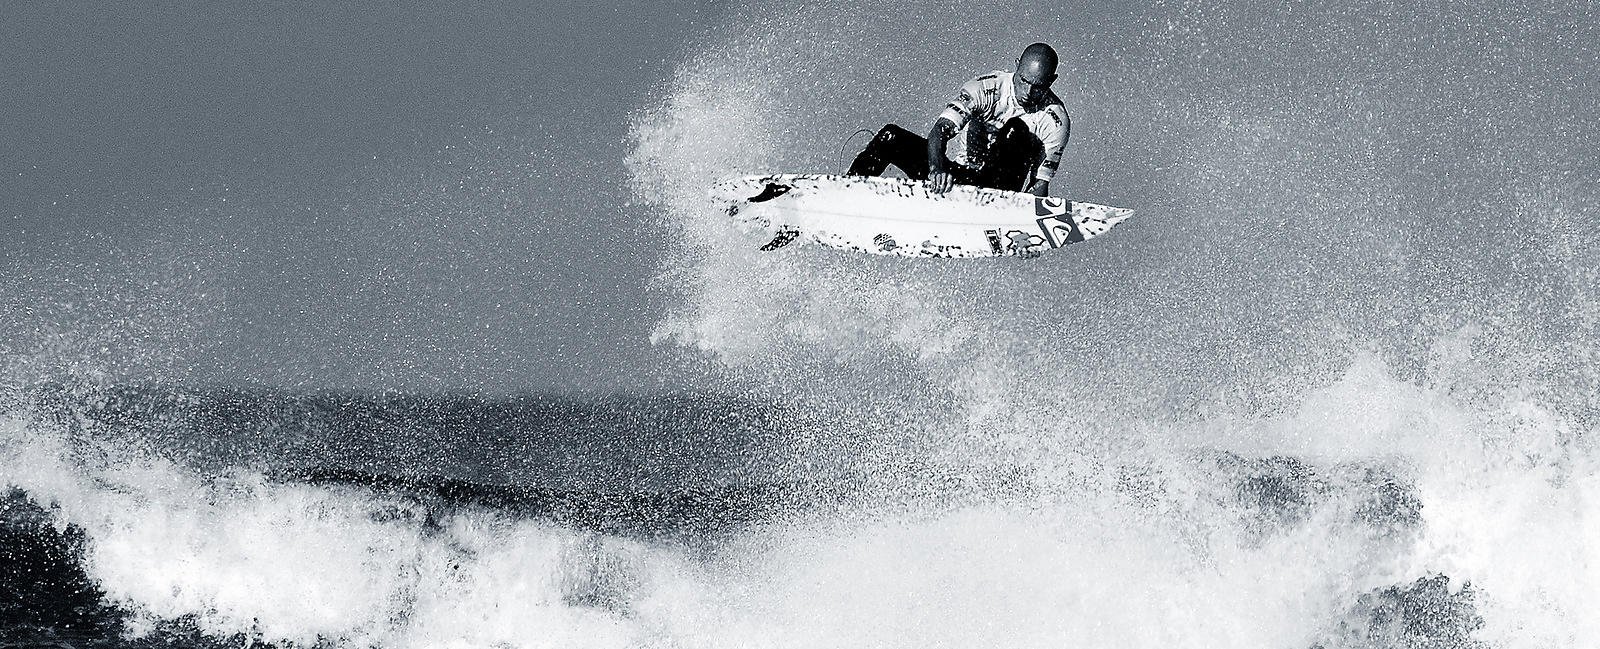 Kelly_SLATER_Hossegor_2008-2_copie_copie